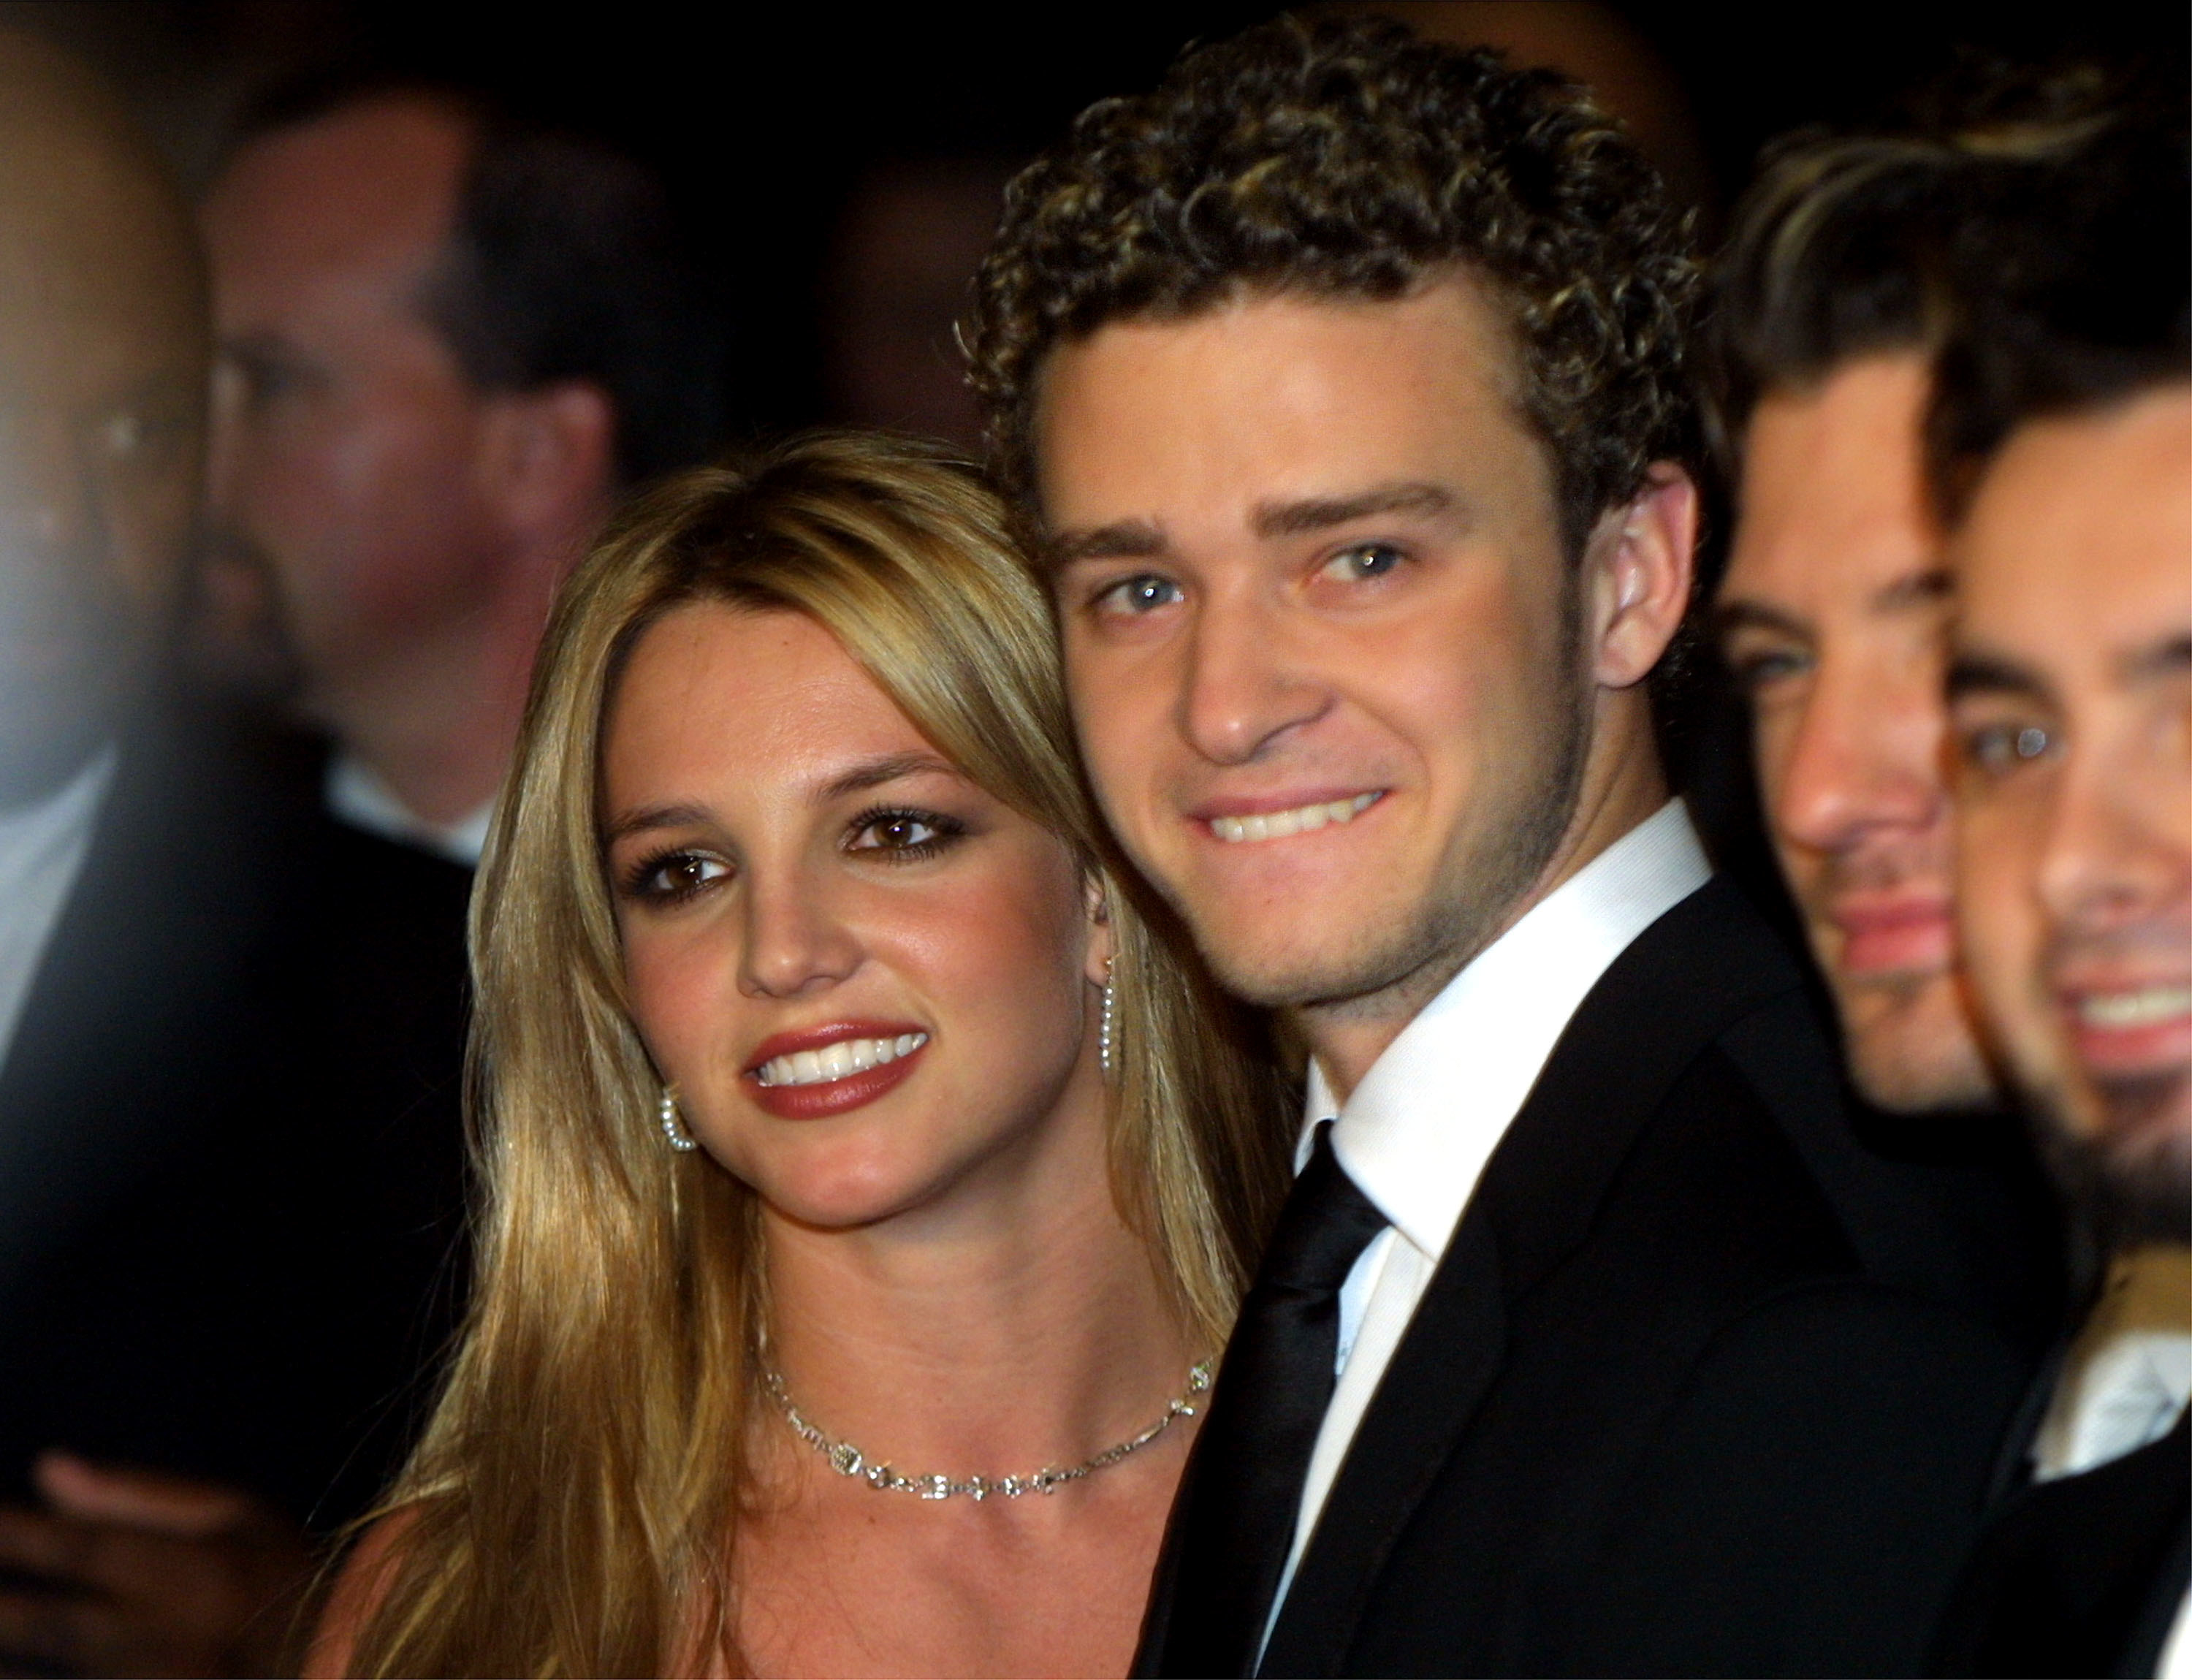 Spears stands next to Timberlake while both of them smile